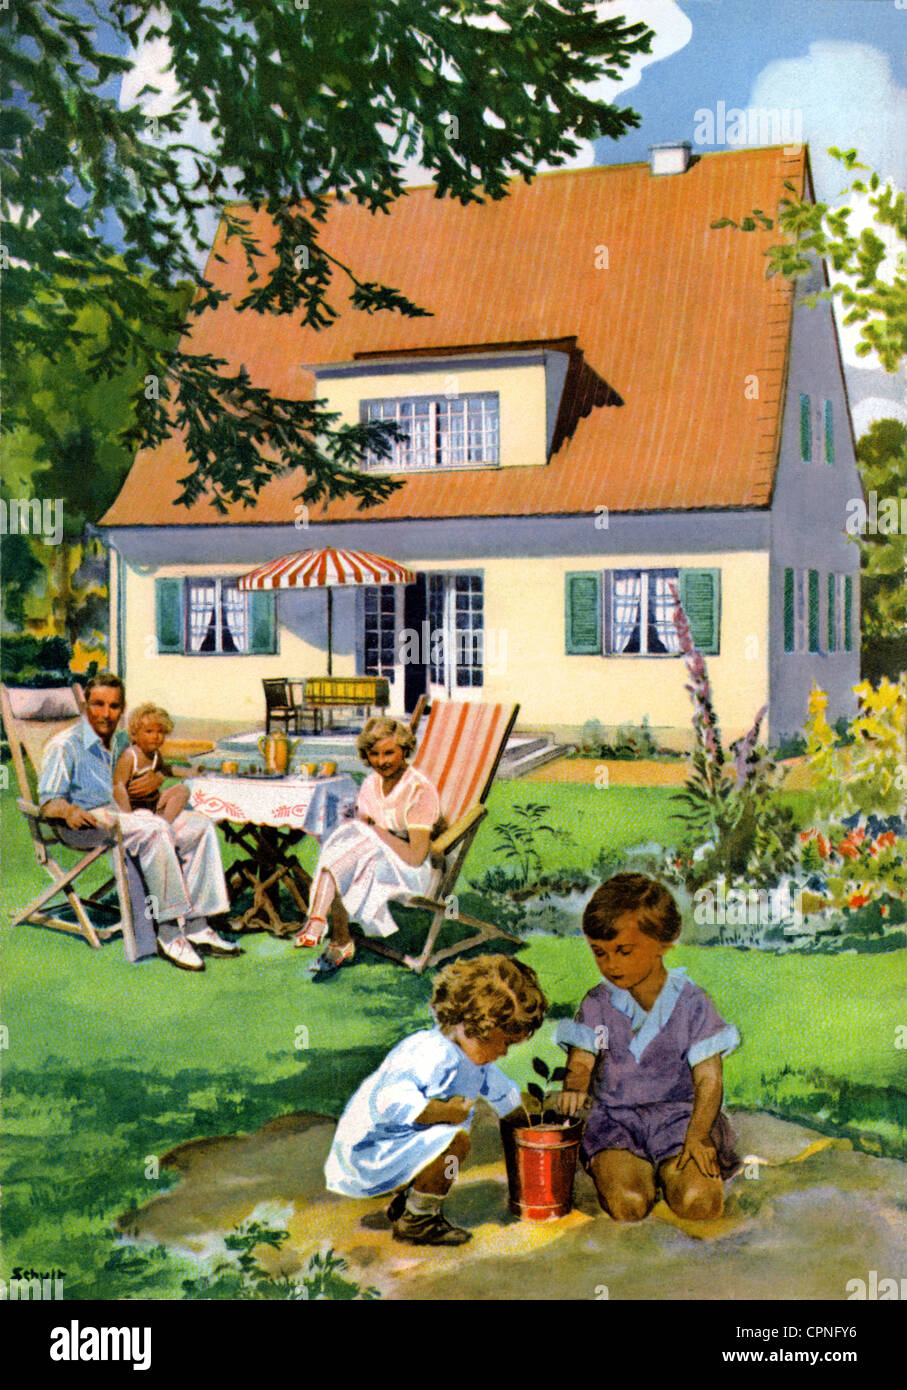 habitation, home, family, playing children, in garden, Germany, circa 1932, Additional-Rights-Clearences-Not Available Stock Photo